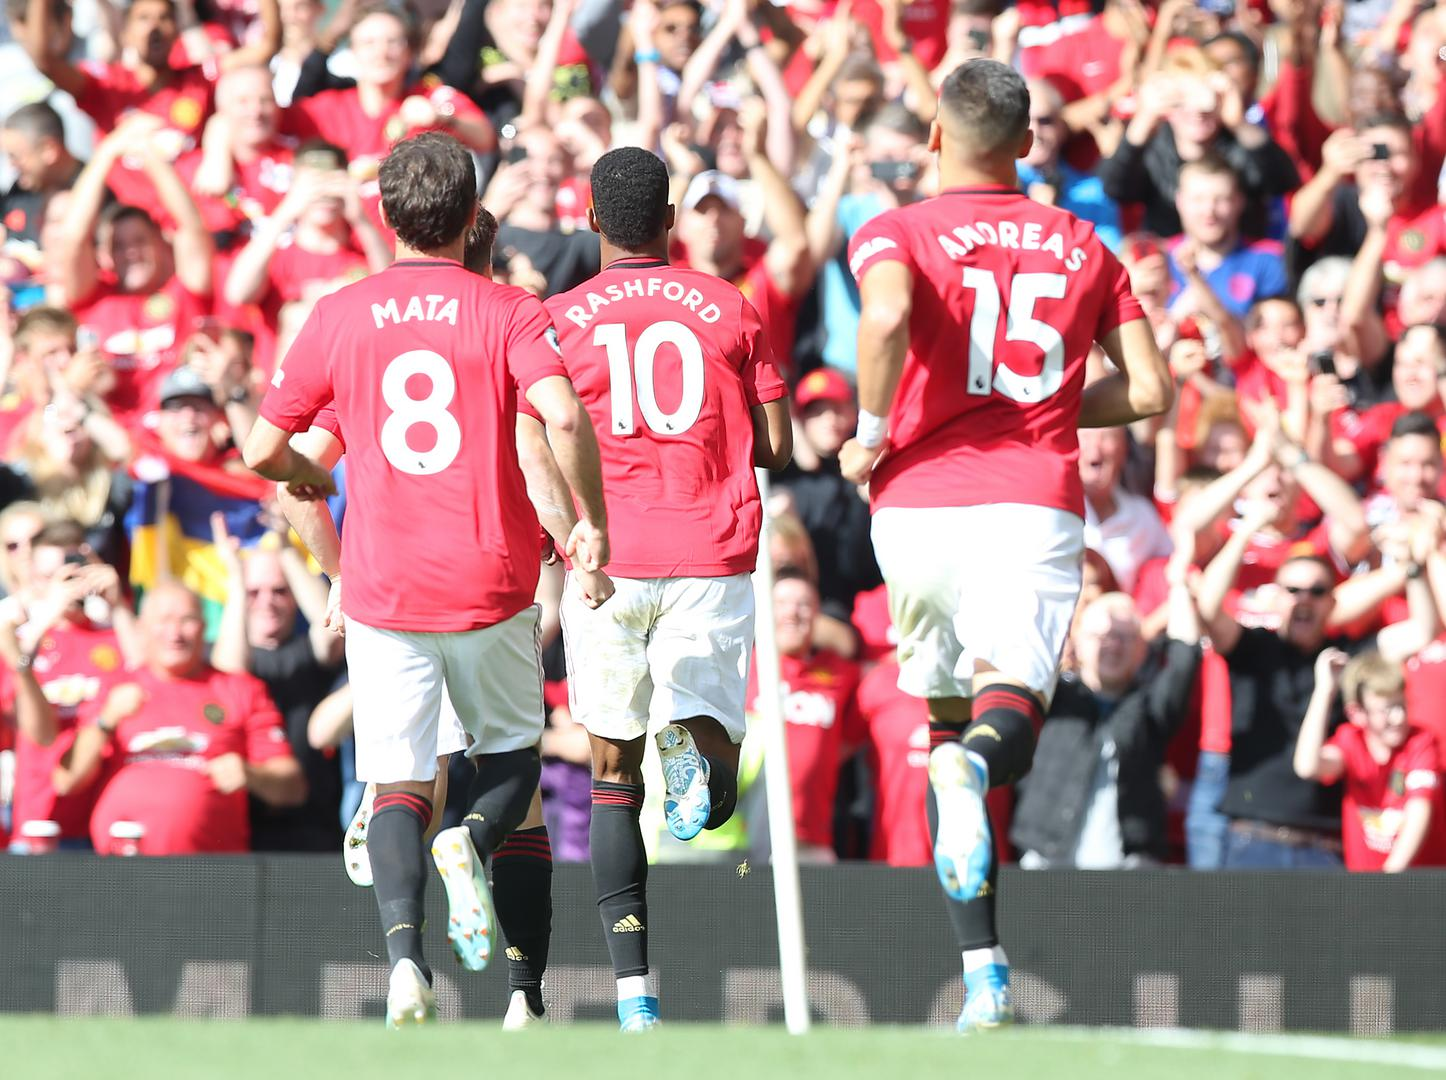 Juan Mata, Marcus Rashford and Andreas Pereira celebrate Manchester United's goal against Leicester City.